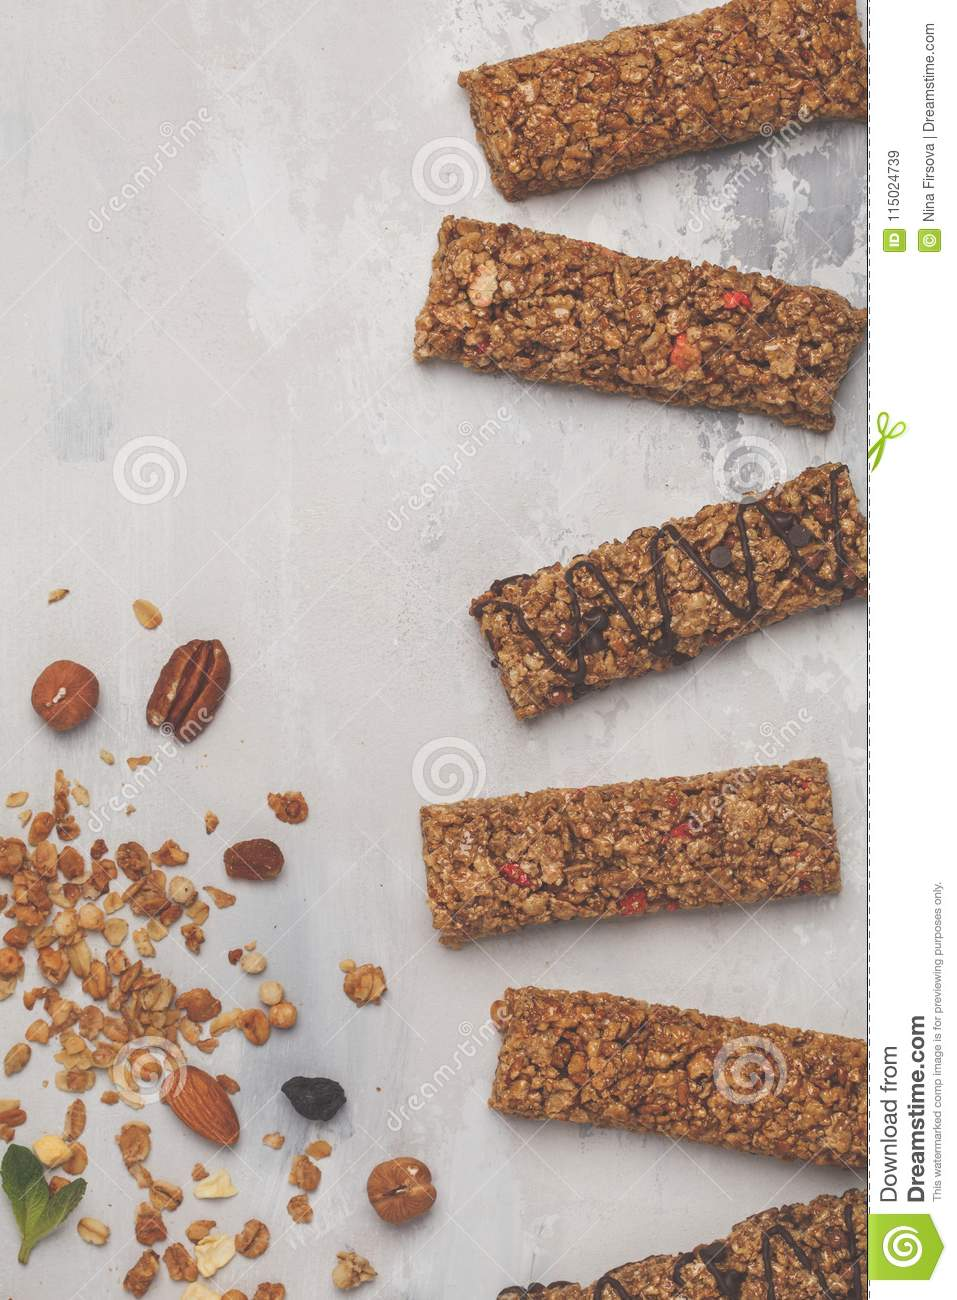 Granola bars and ingredients healthy sweet dessert snack cerea download granola bars and ingredients healthy sweet dessert snack cerea stock image image ccuart Image collections